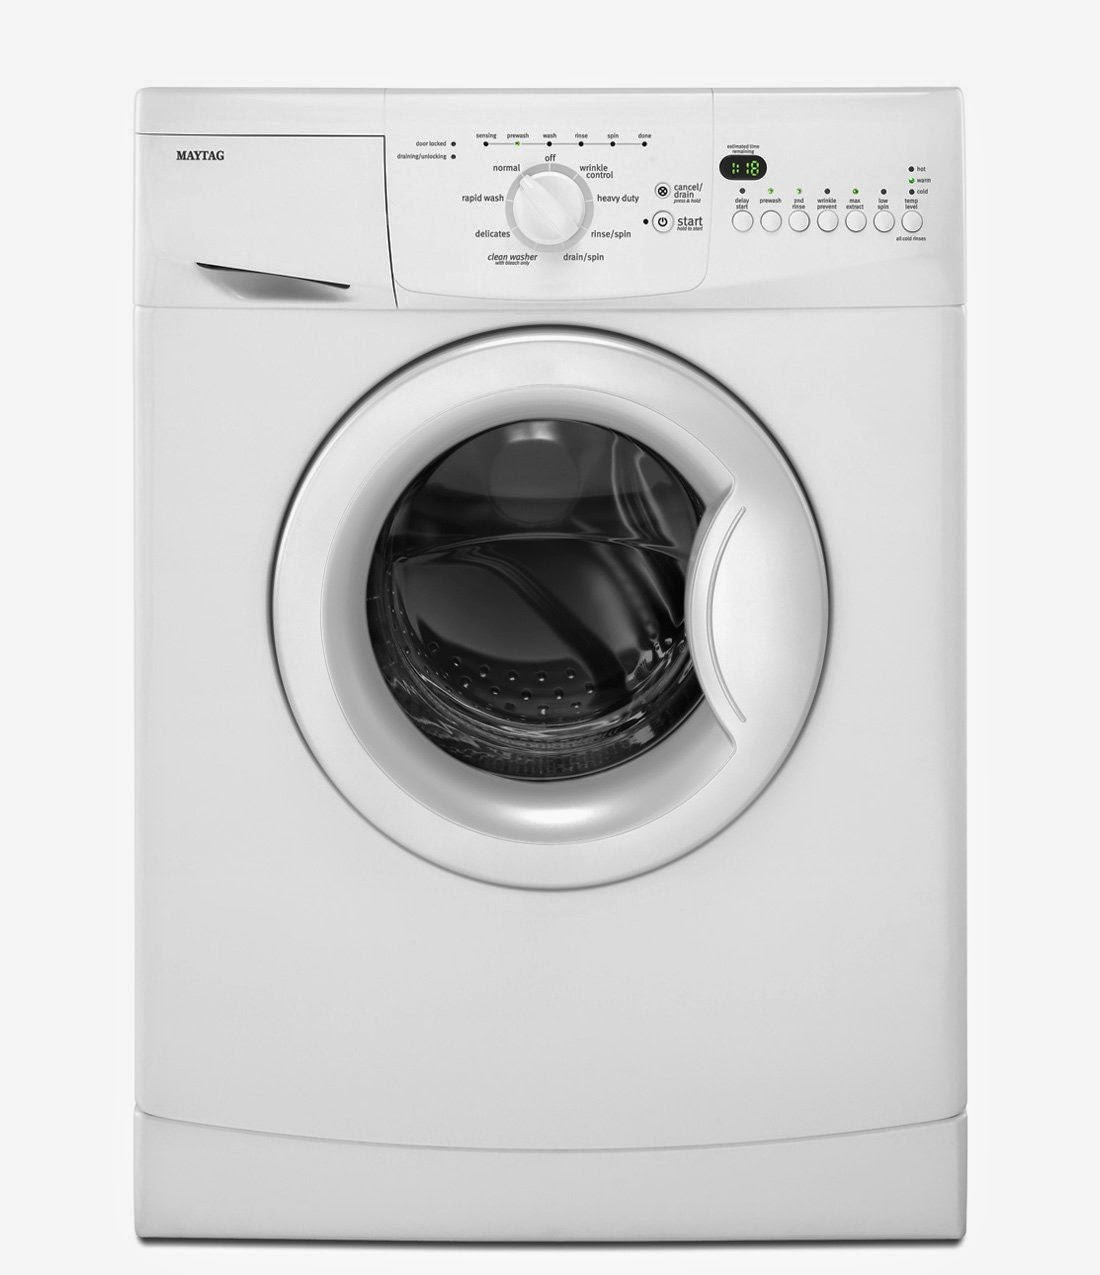 Stackable Washer Dryer Maytag Stackable Washer Dryer